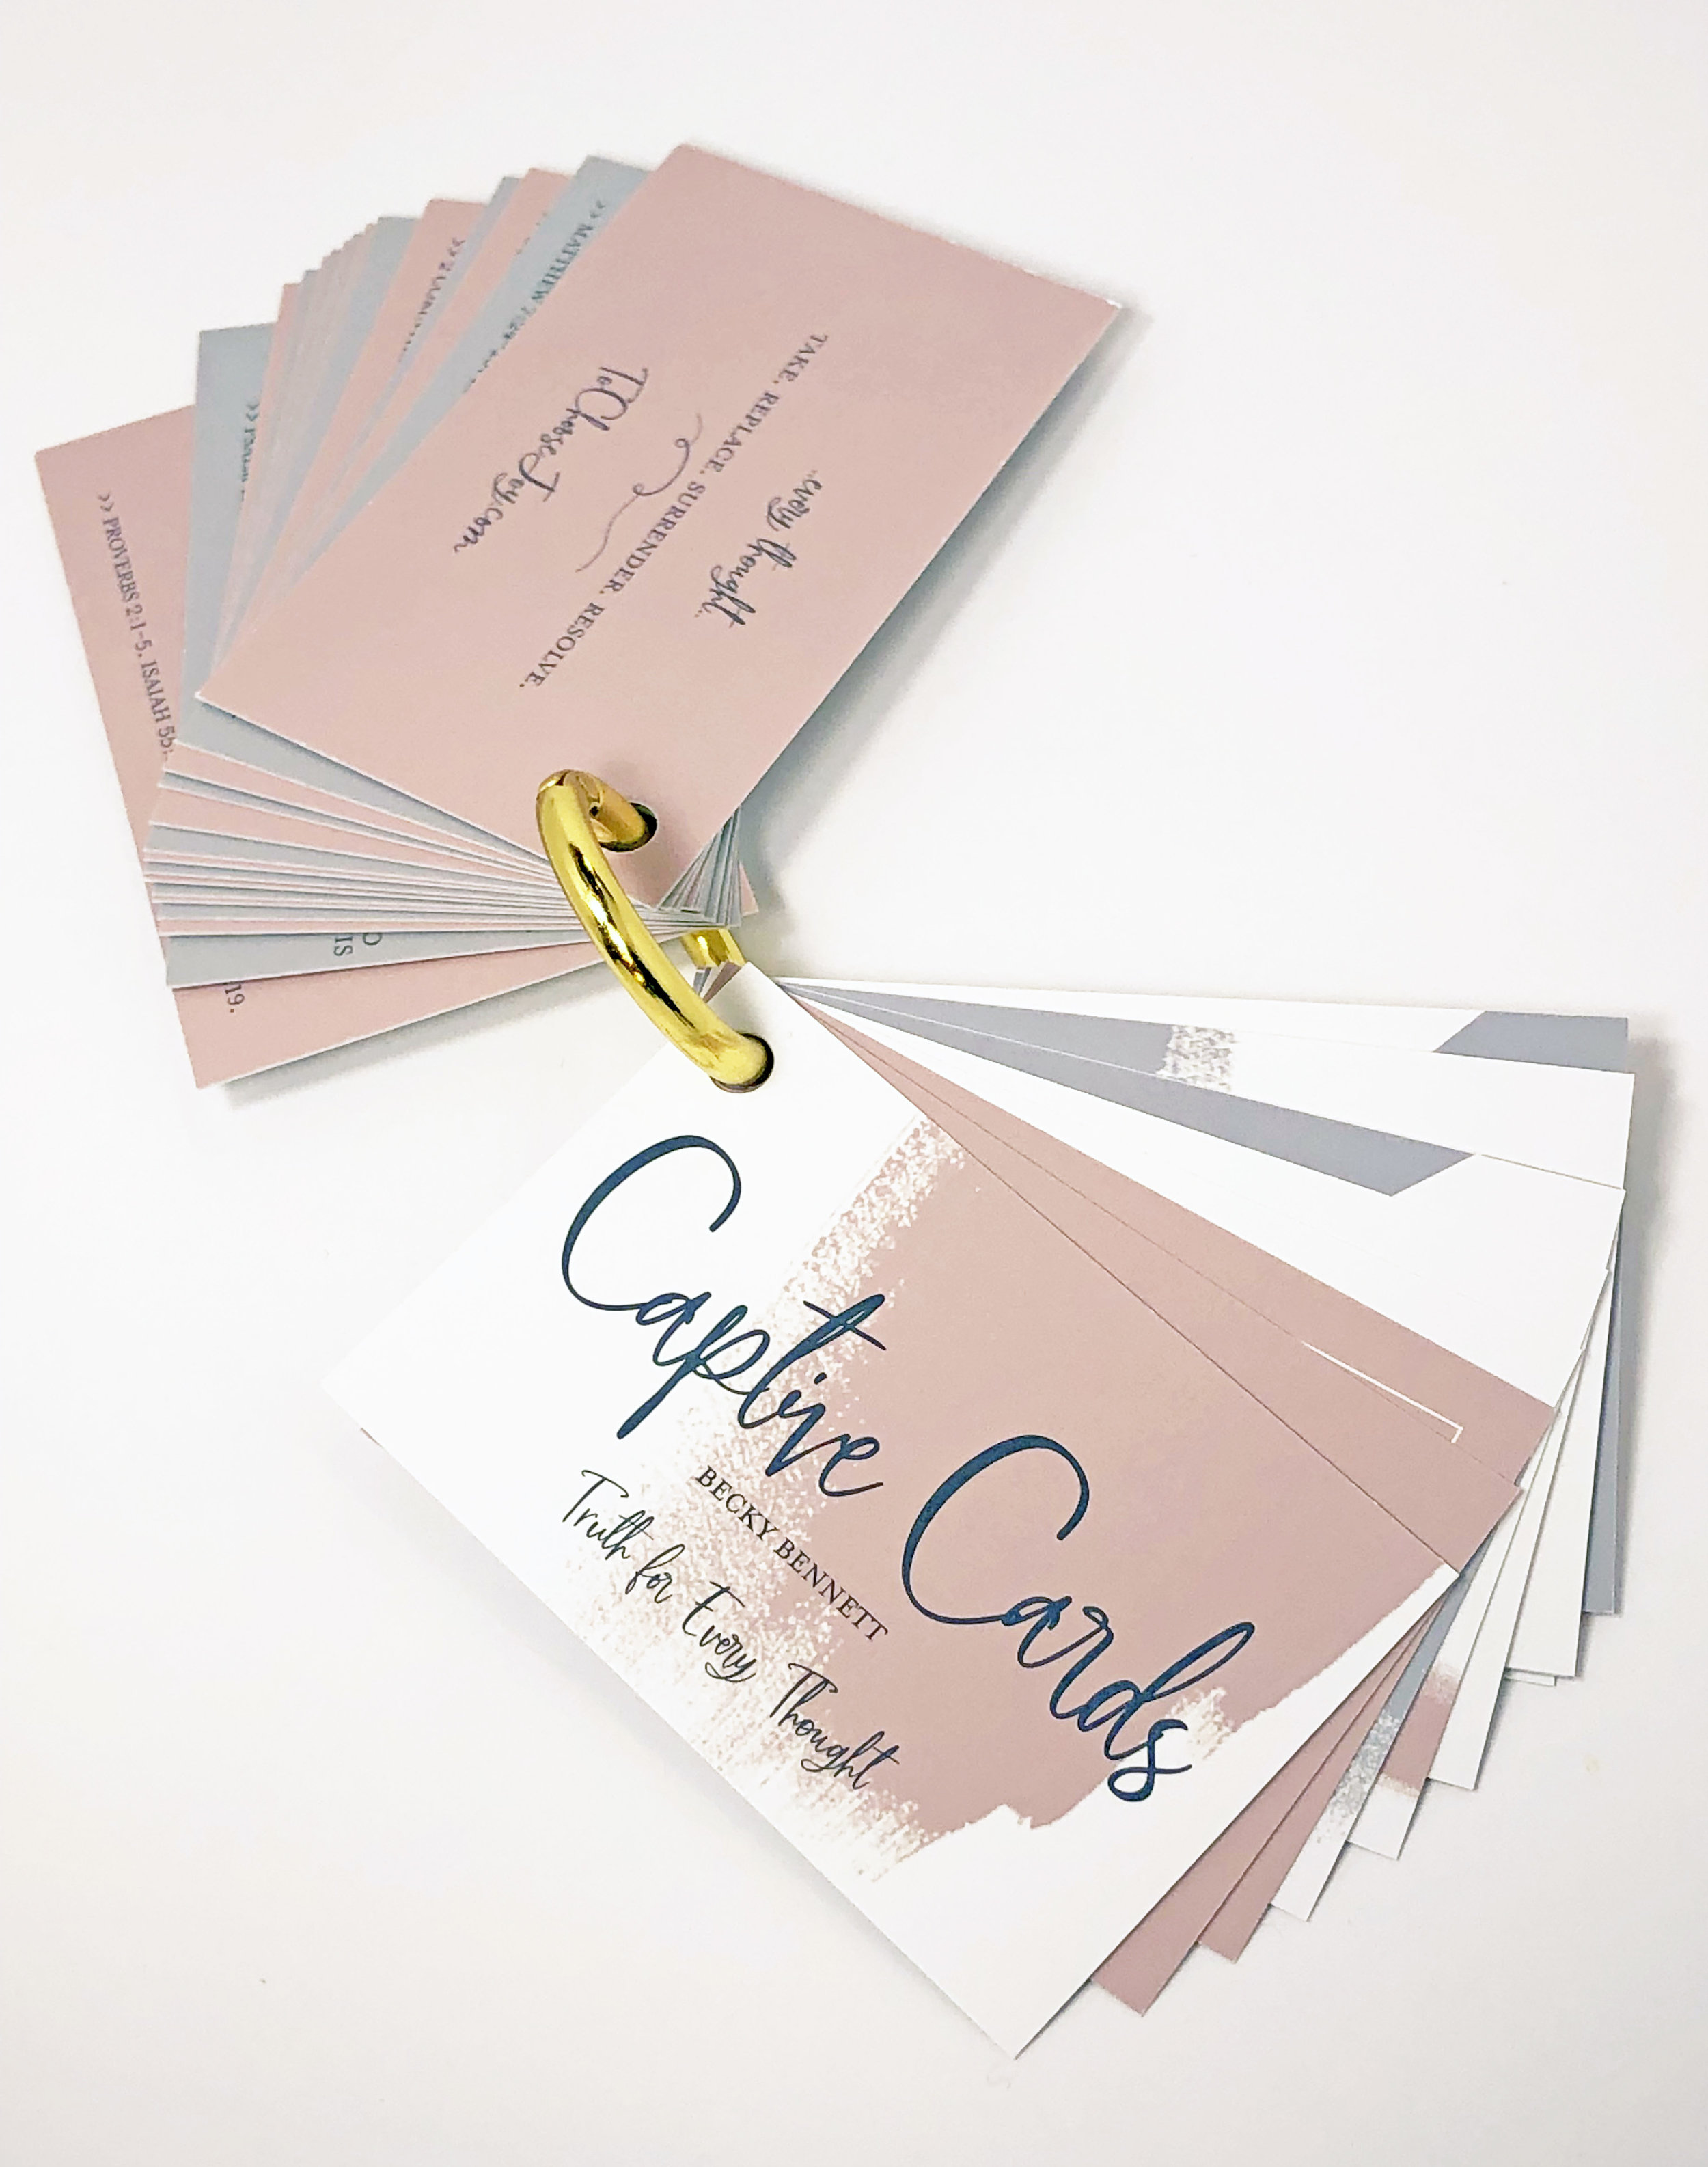 Captive Cards_To Choose Joy Scripture Memory_Womens Bible Study_Biblical Literacy 6.jpg